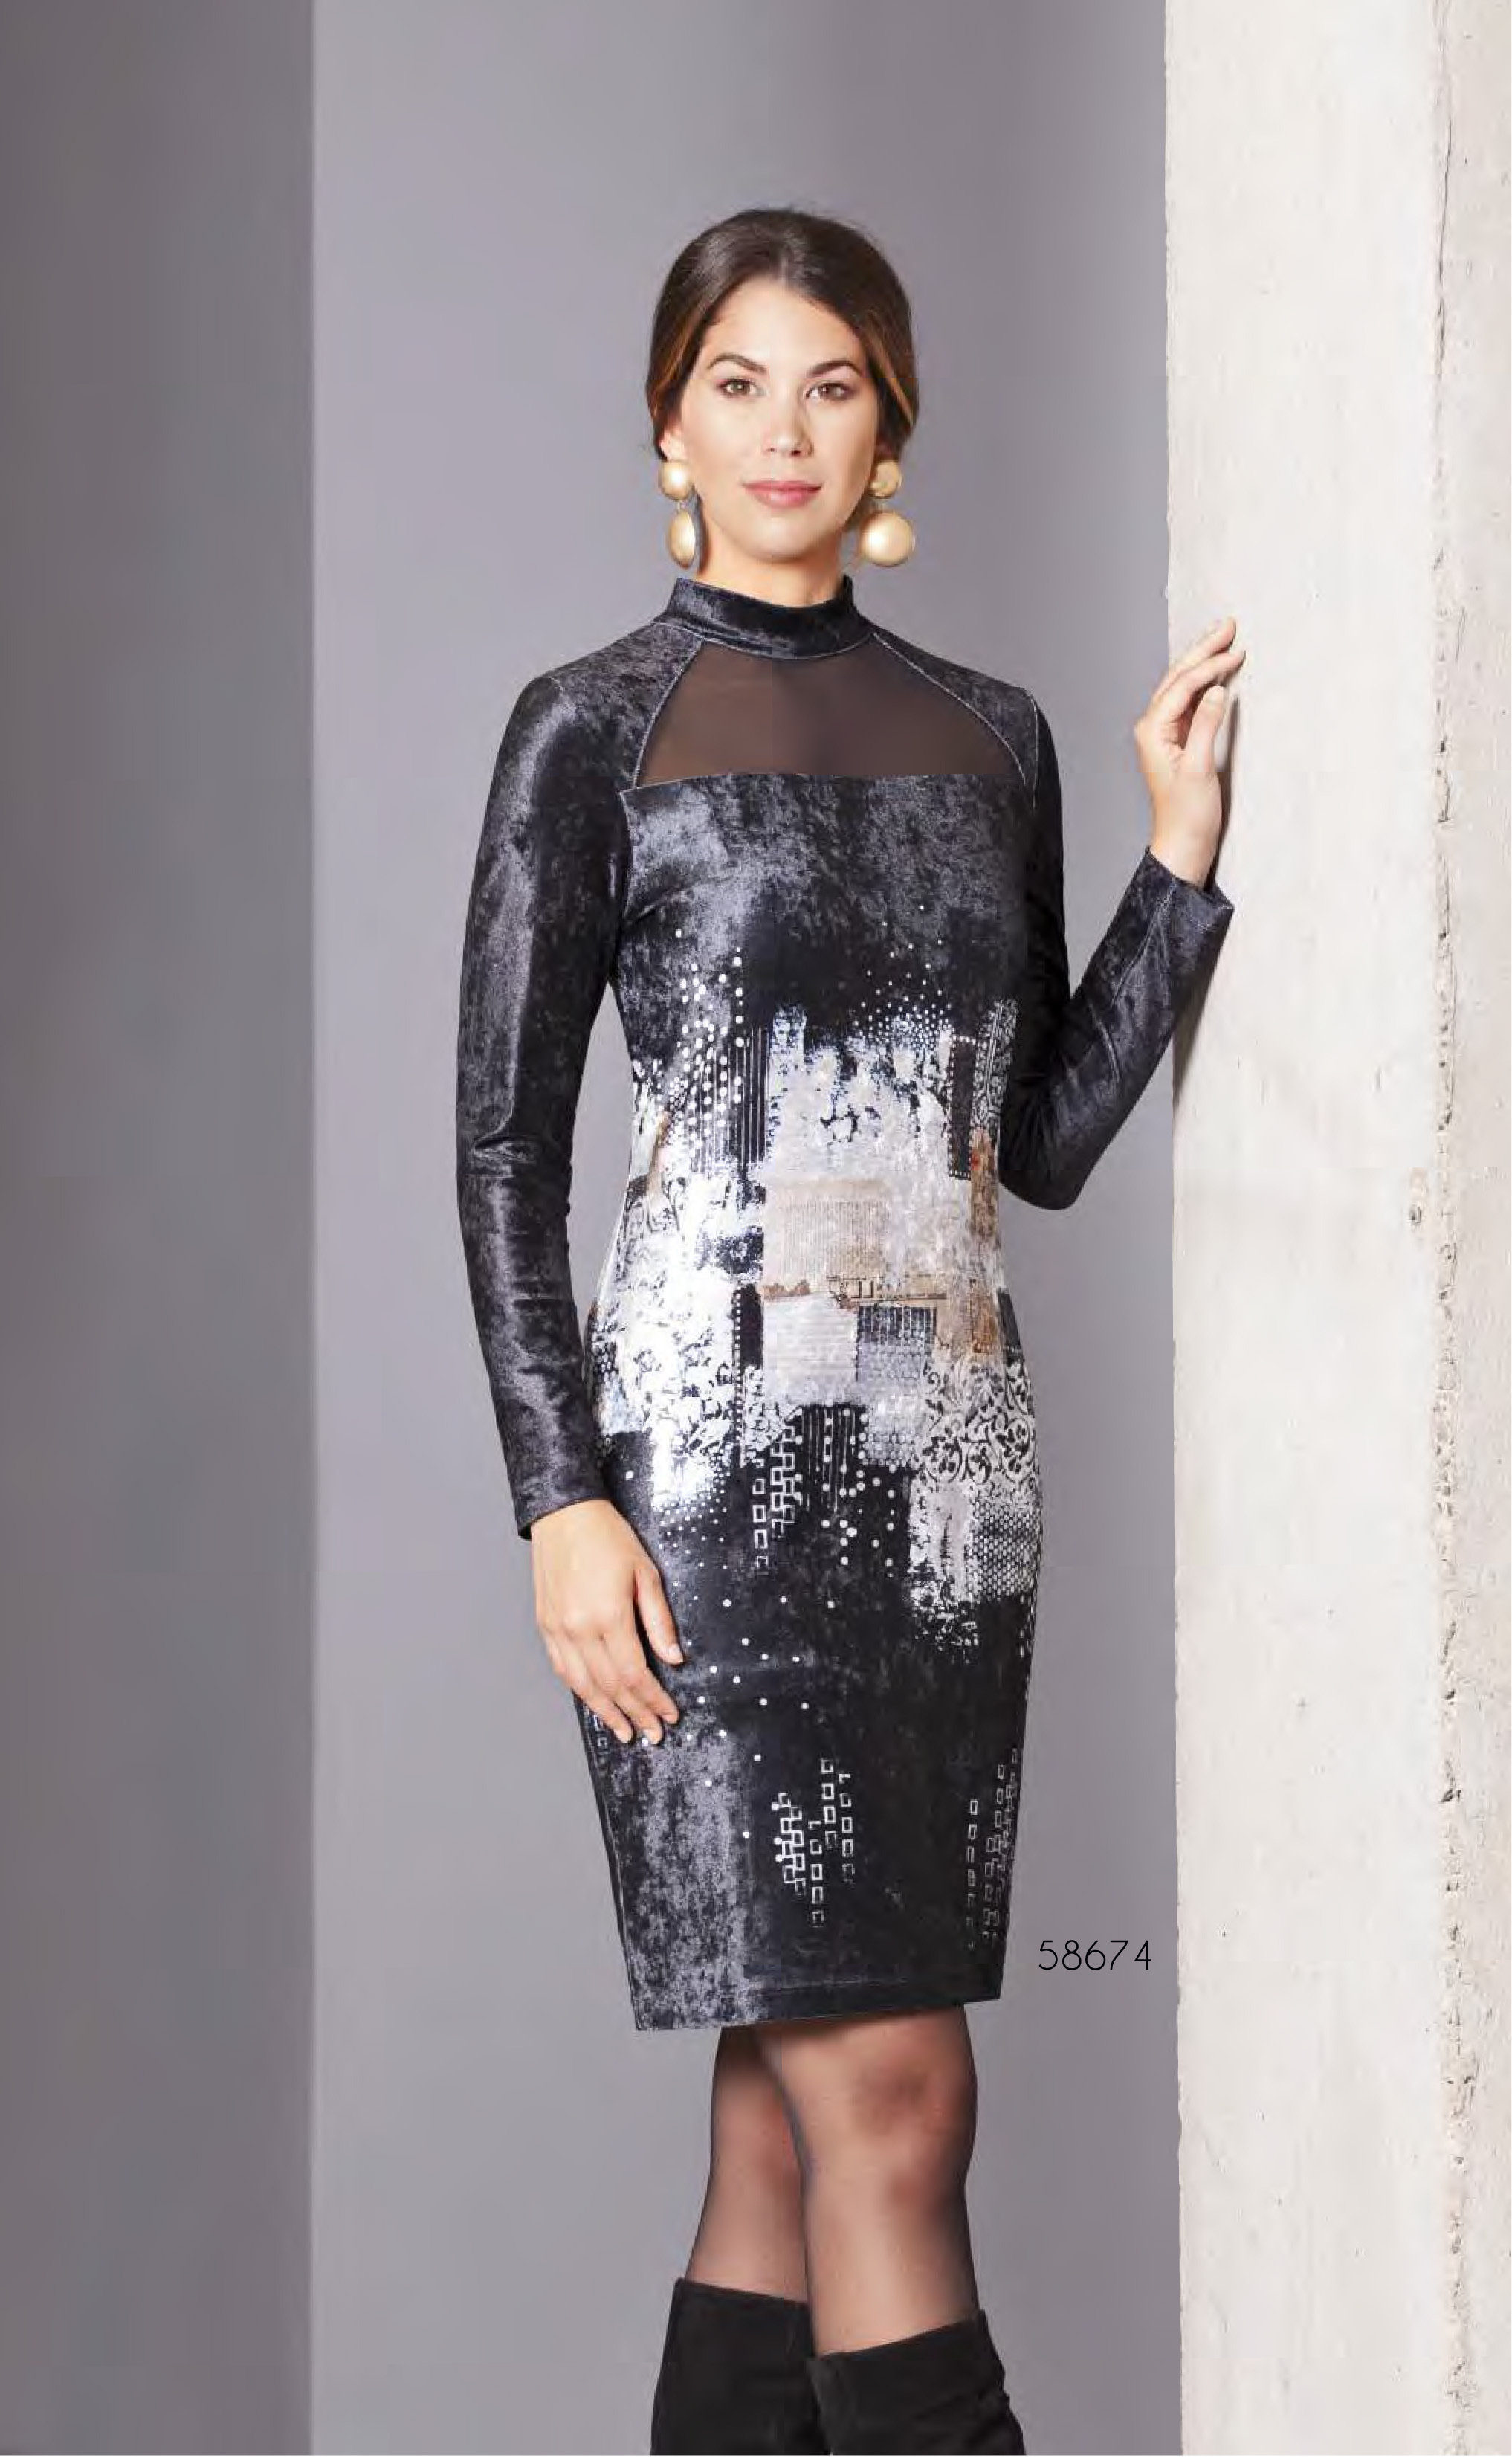 Simply Art Dolcezza: Explosion of Crystals Abstract Art Velvet Dress DOLCEZZA_SIMPLYART_58674_N1